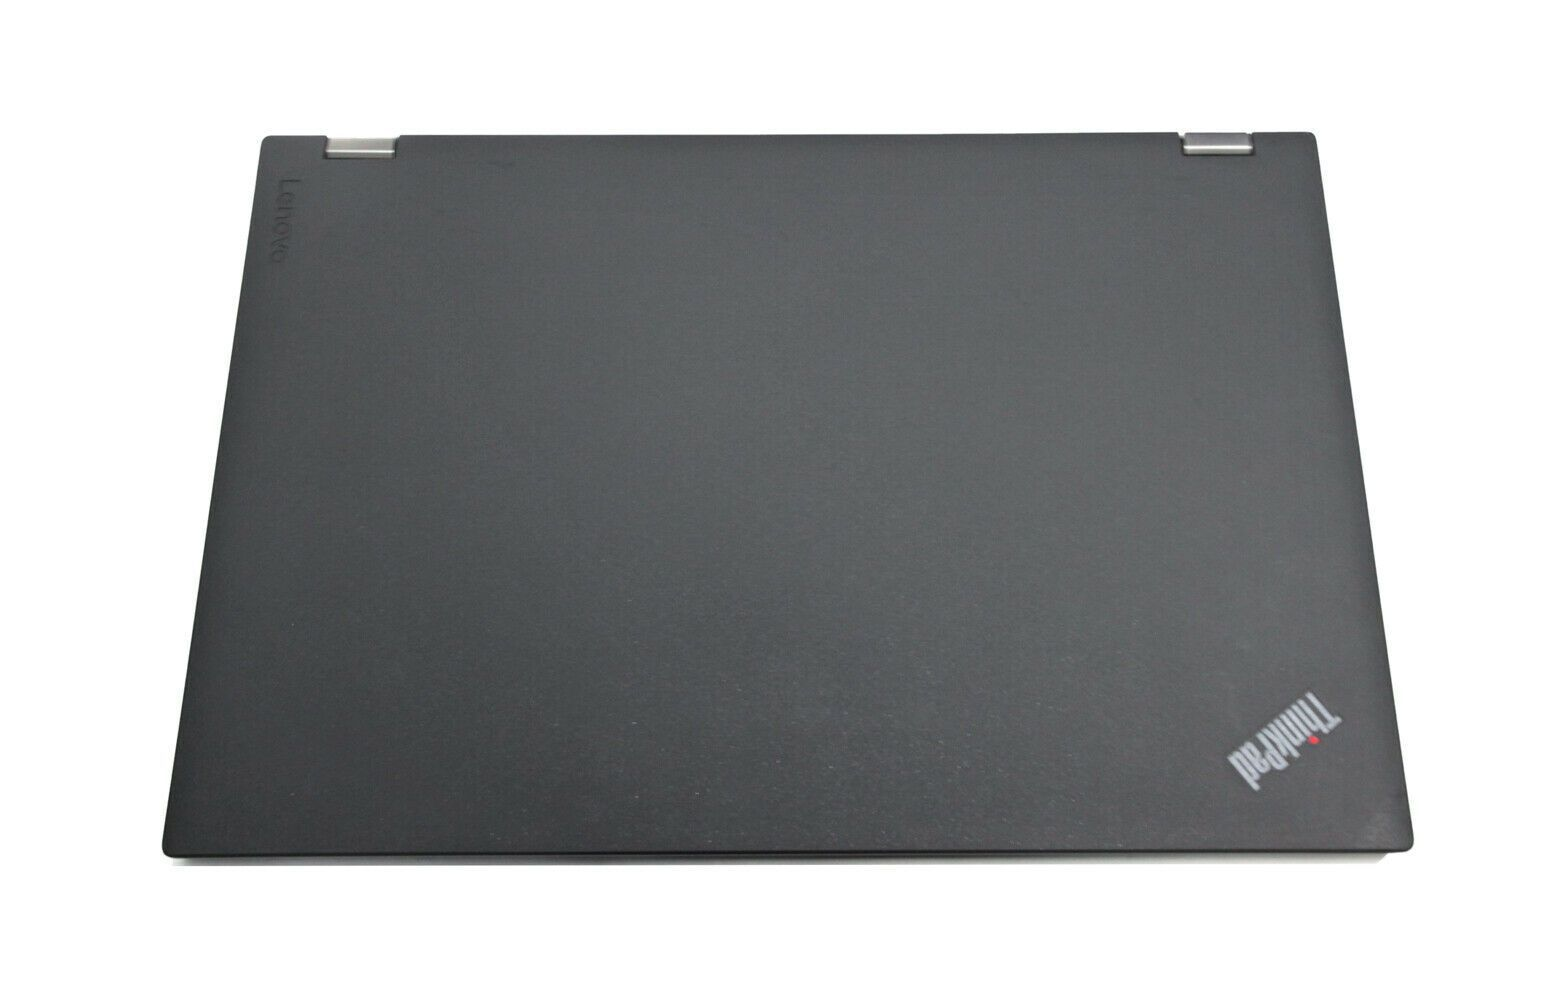 Lenovo ThinkPad P51 Laptop: Xeon, 64GB ECC RAM, 2x 512GB SSD, Warranty - CruiseTech